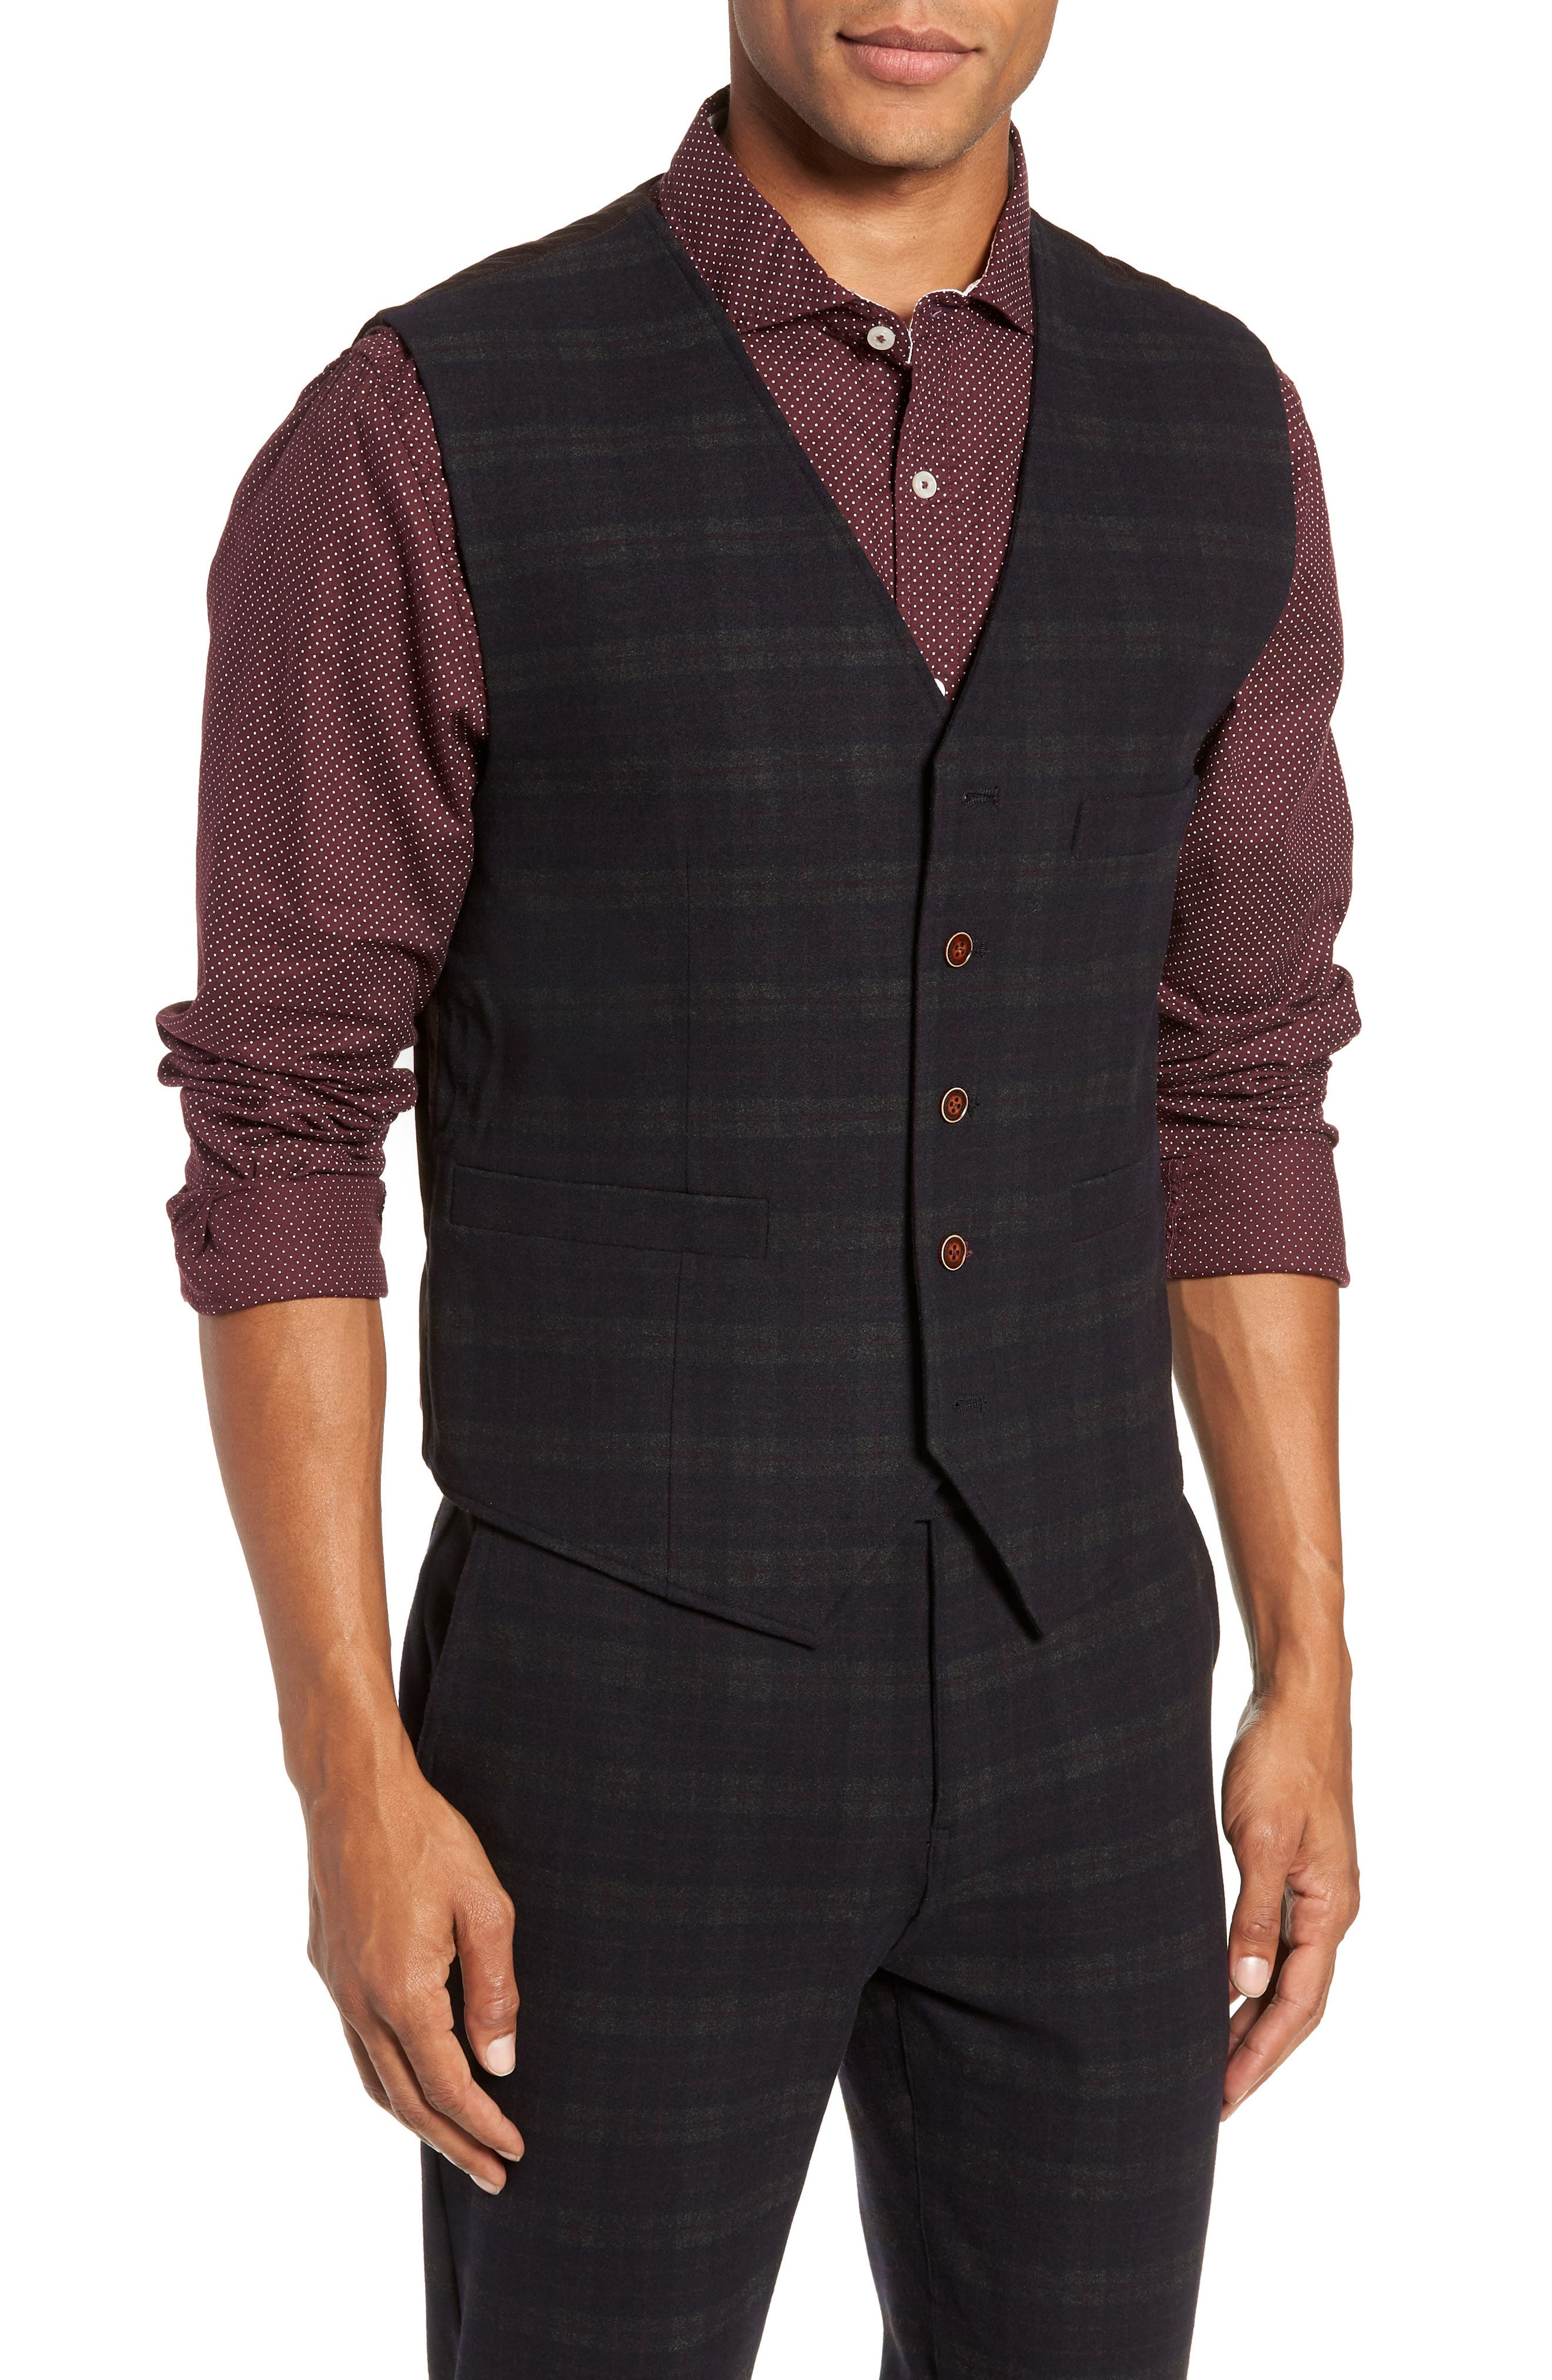 Albert Regular Fit Stretch Vest,                         Main,                         color, MIDNIGHT/ RED/ CHARCOAL